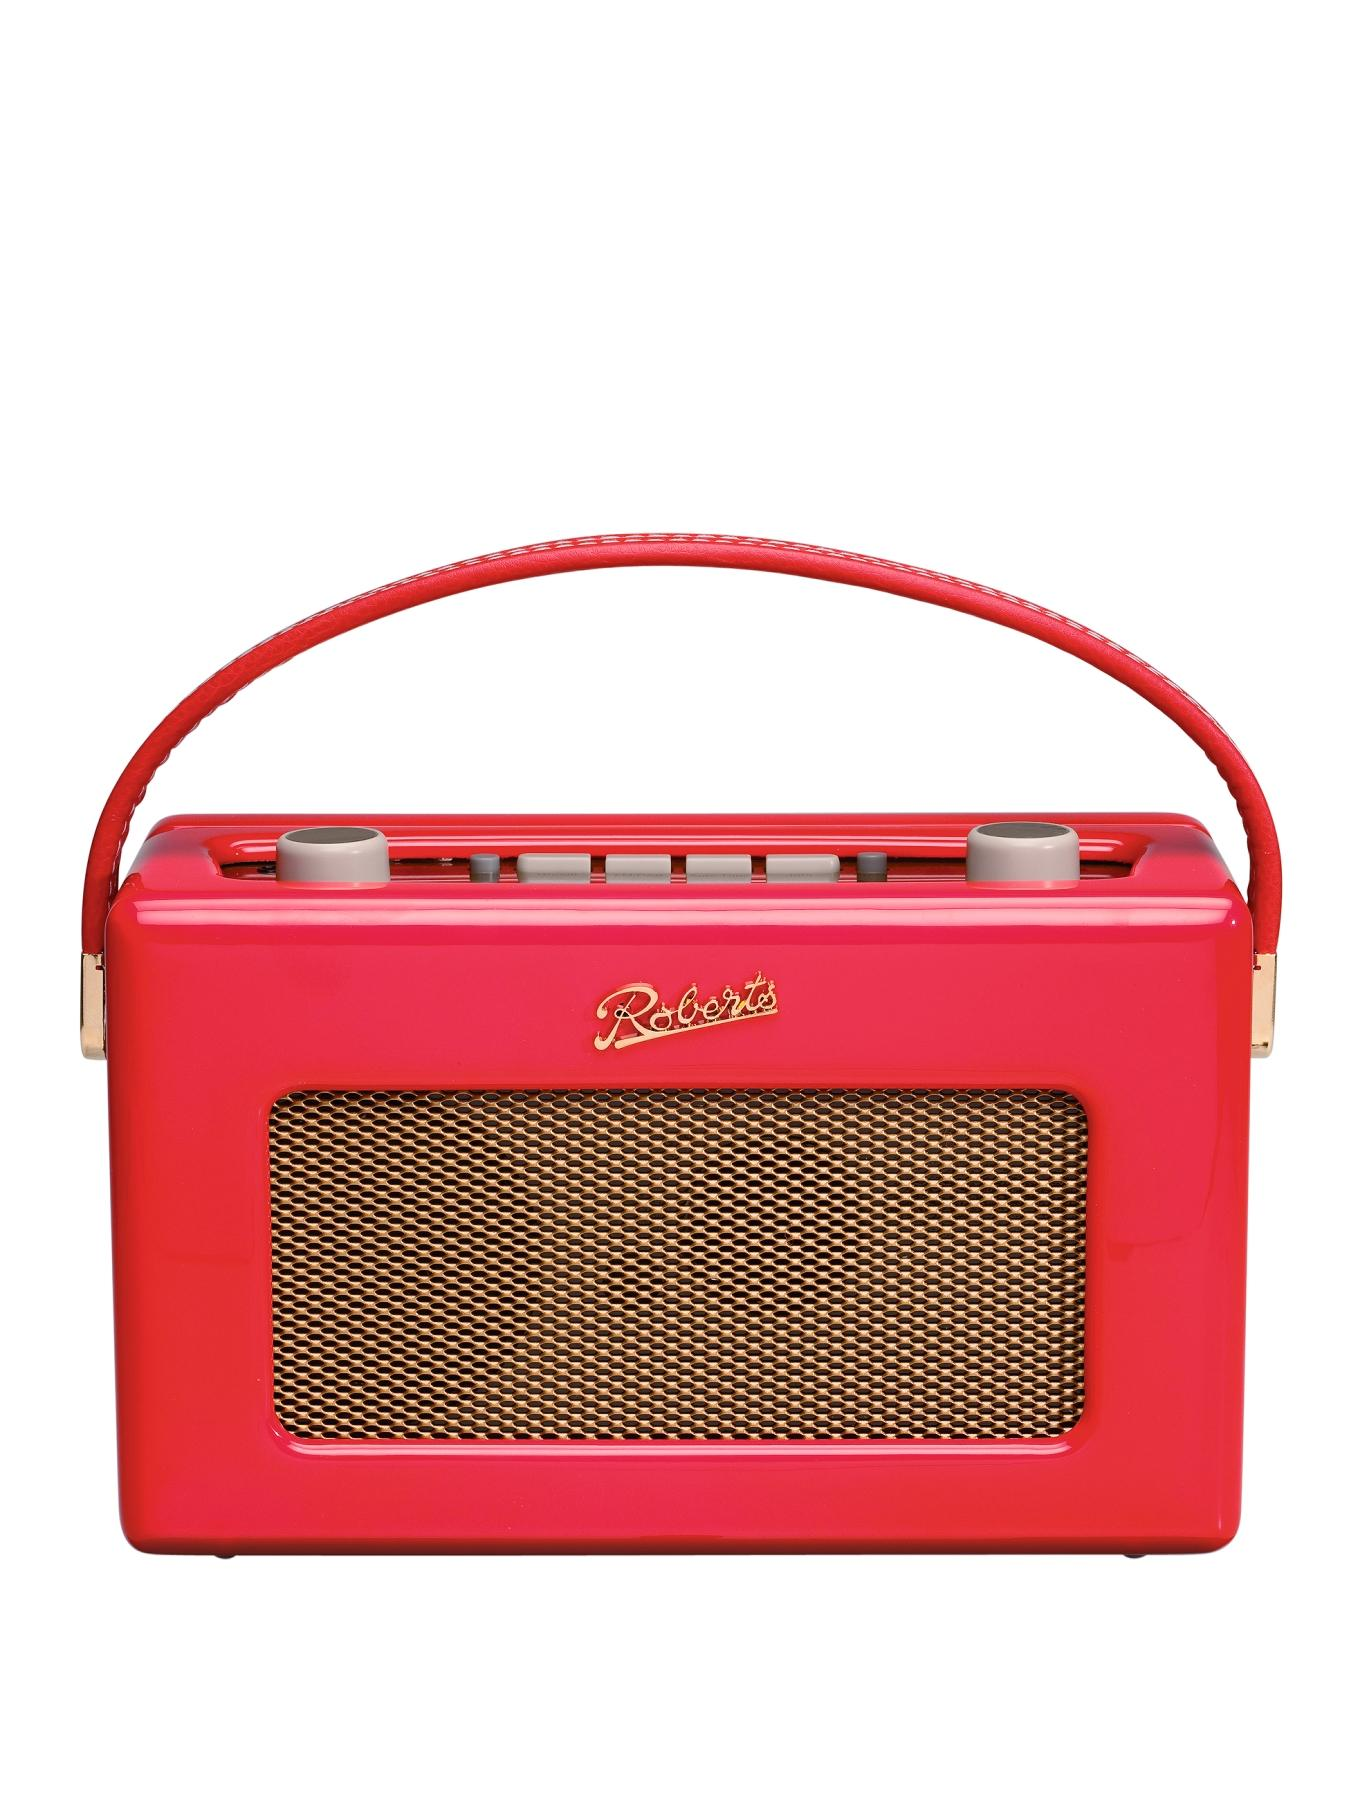 DAB Revival Gloss Radio - Red